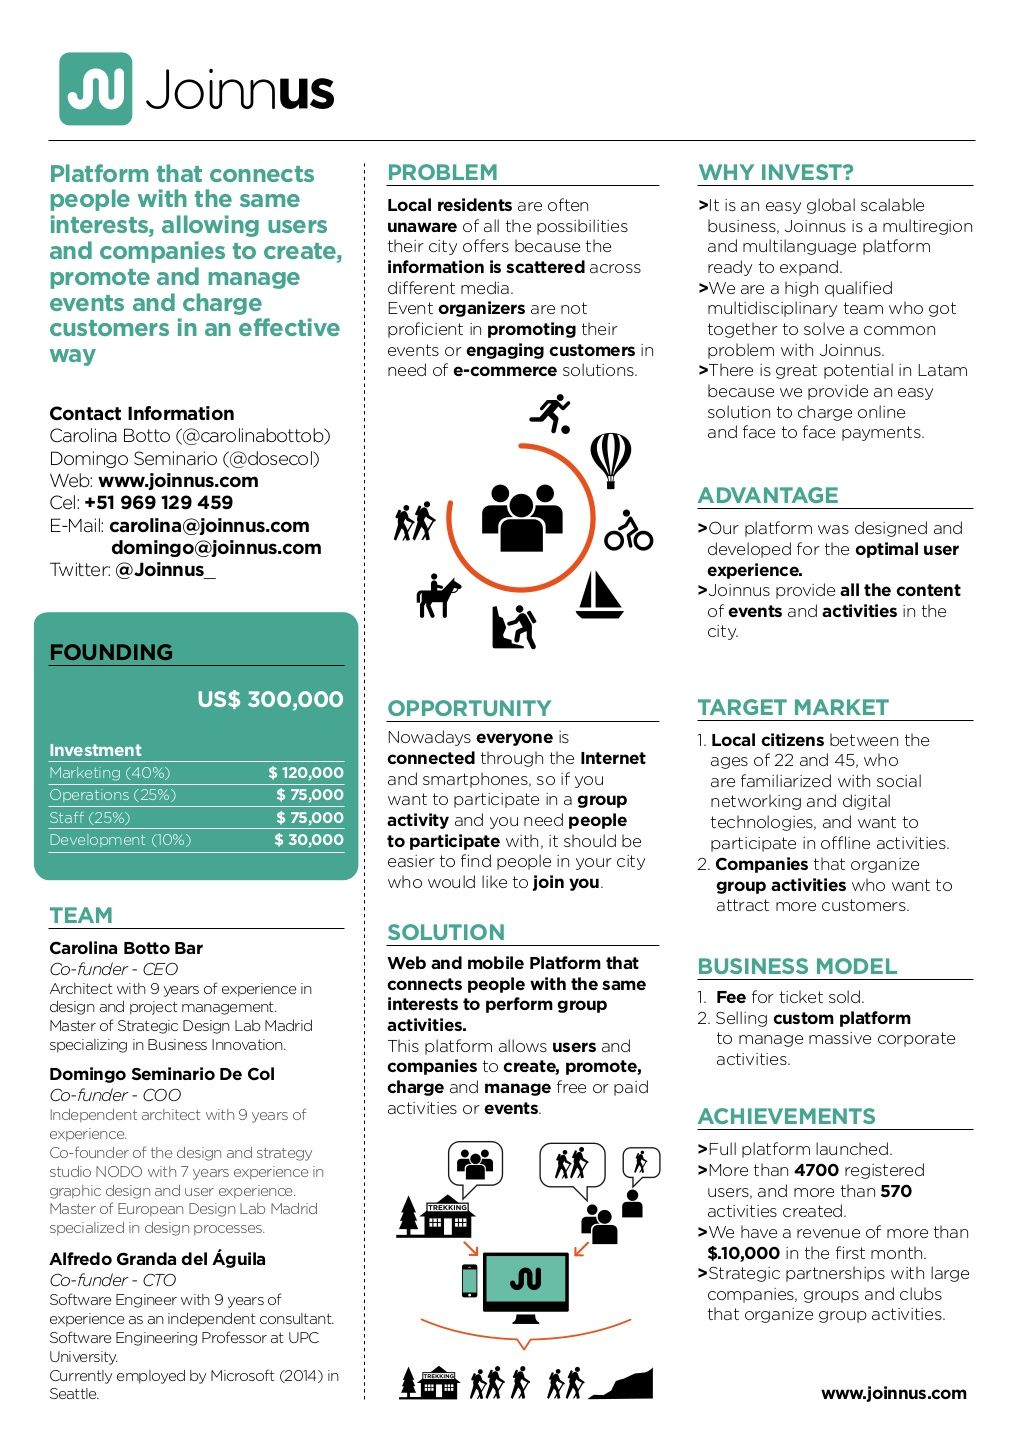 Problembusiness Modeladvantagewhy Invest Target Marketachievementsteamsolutionopportunitylocal Resi One Page Business Plan One Pager Business Website Templates One page fact sheet template